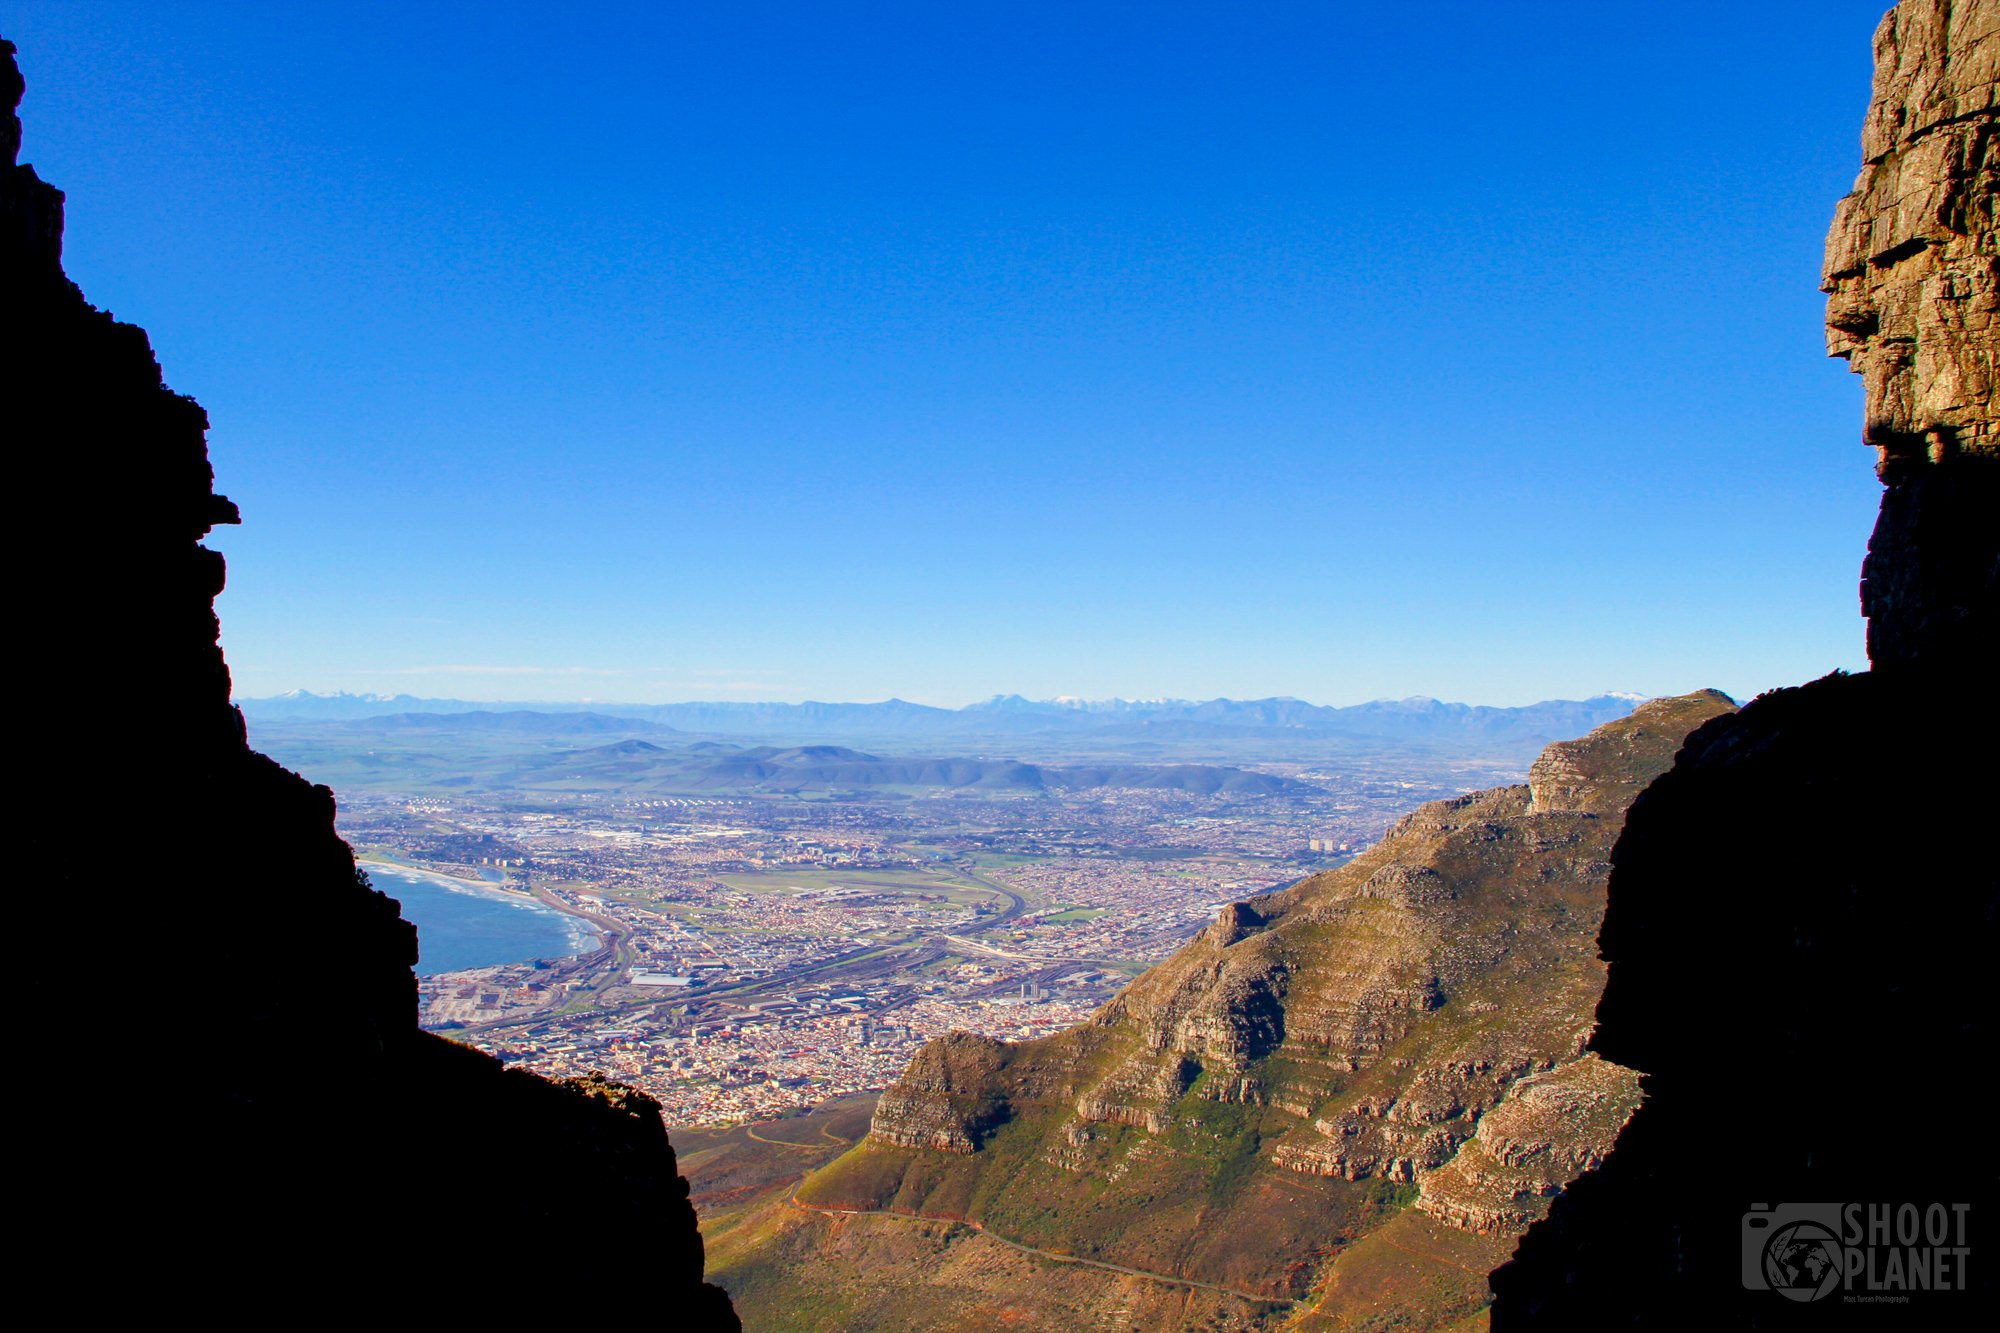 Cape Town from table mountain, South Africa